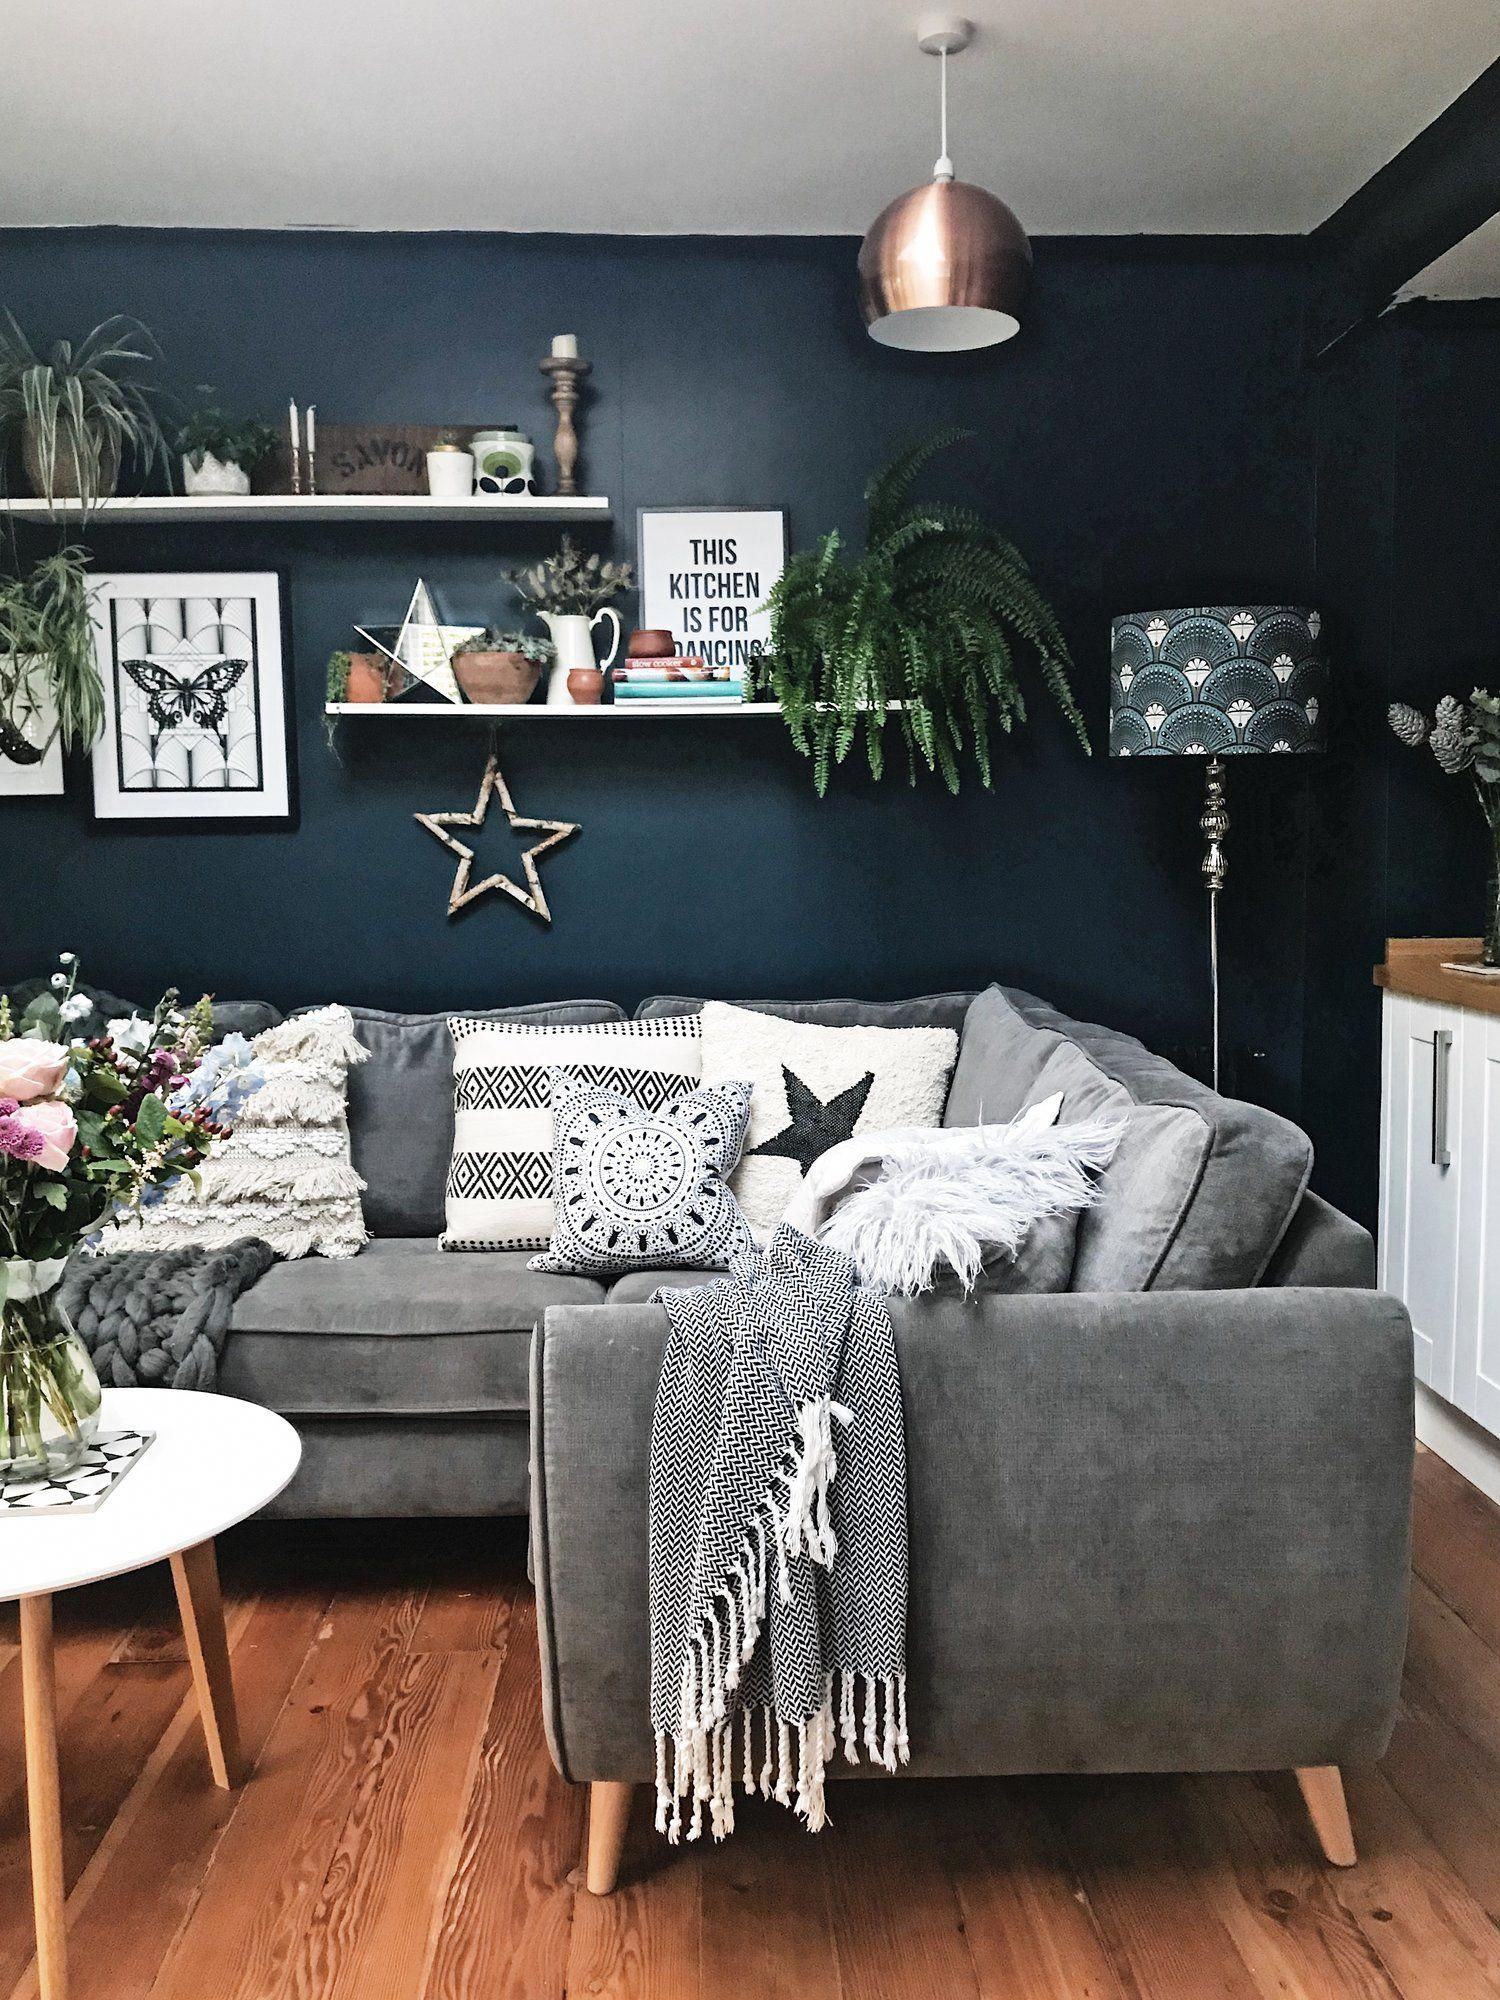 Pin By Ashley Hernandez On Layout Decor In 2020 Blue Living